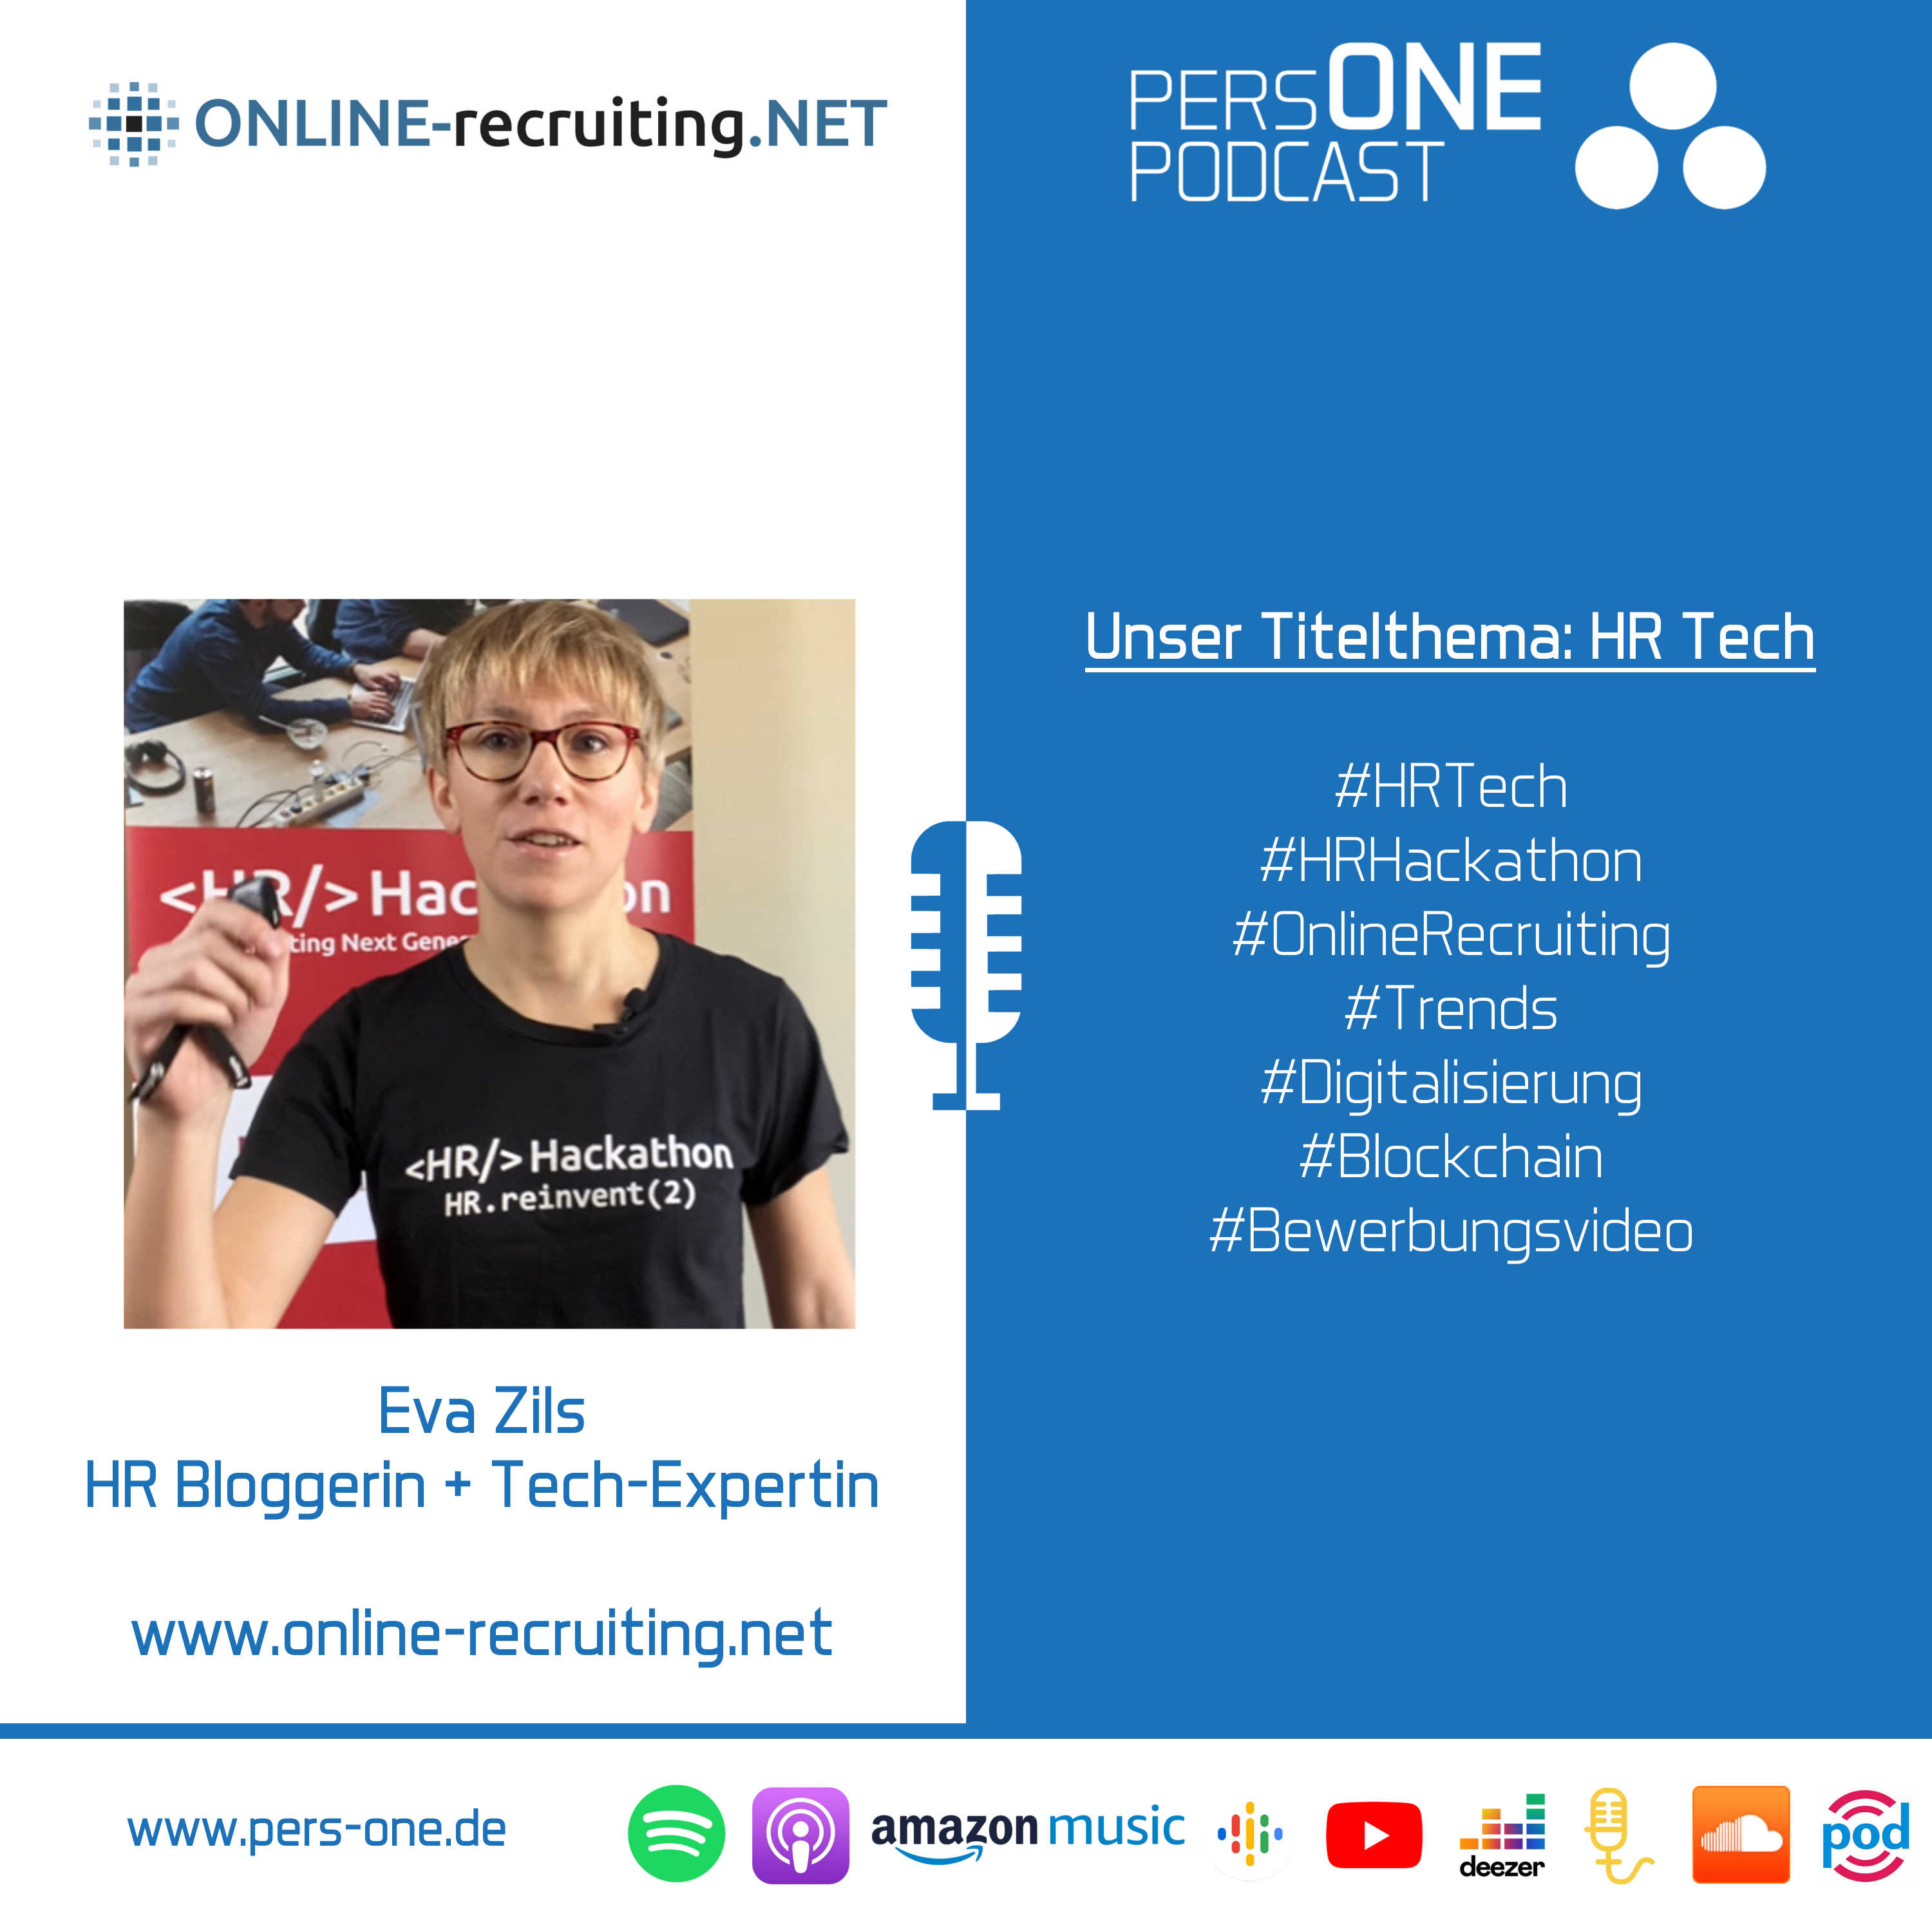 HR Tech | Eva Zils im Podcast-Interview | PERSONE PODCAST – Der Personal-Podcast